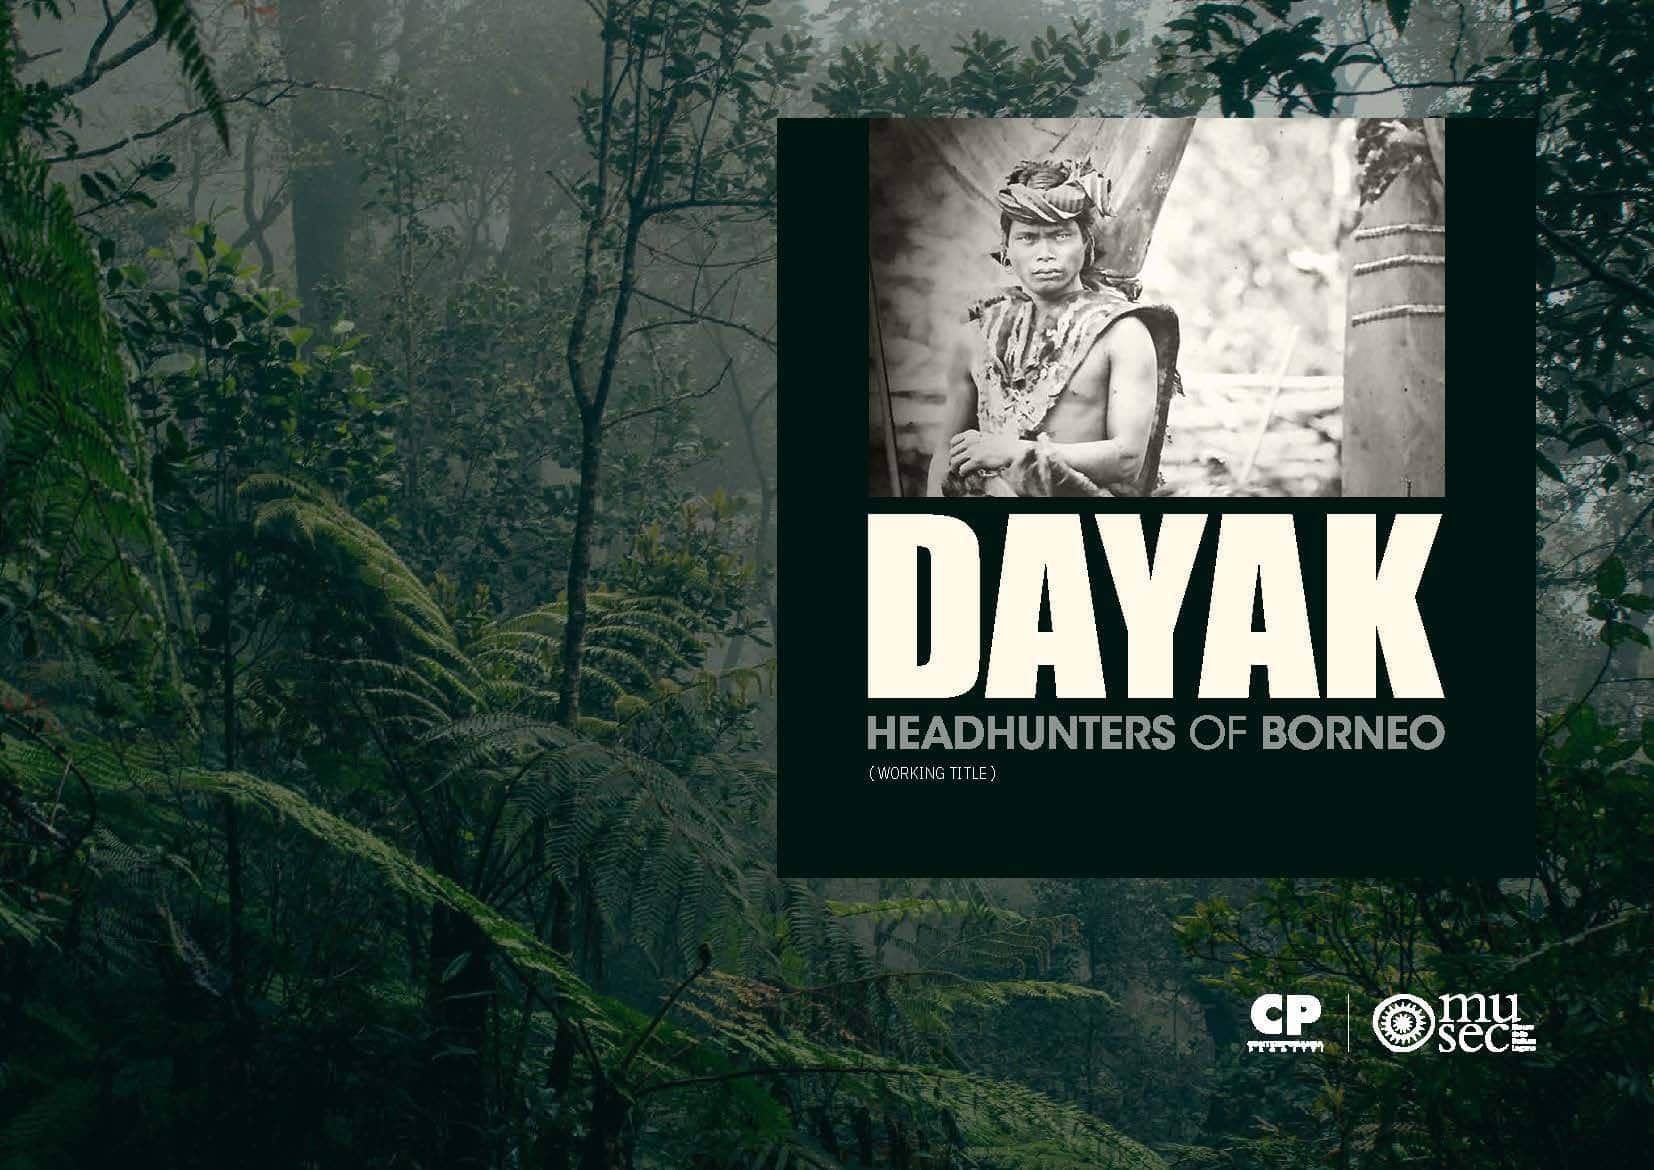 Dayak, Headhunters of Borneo